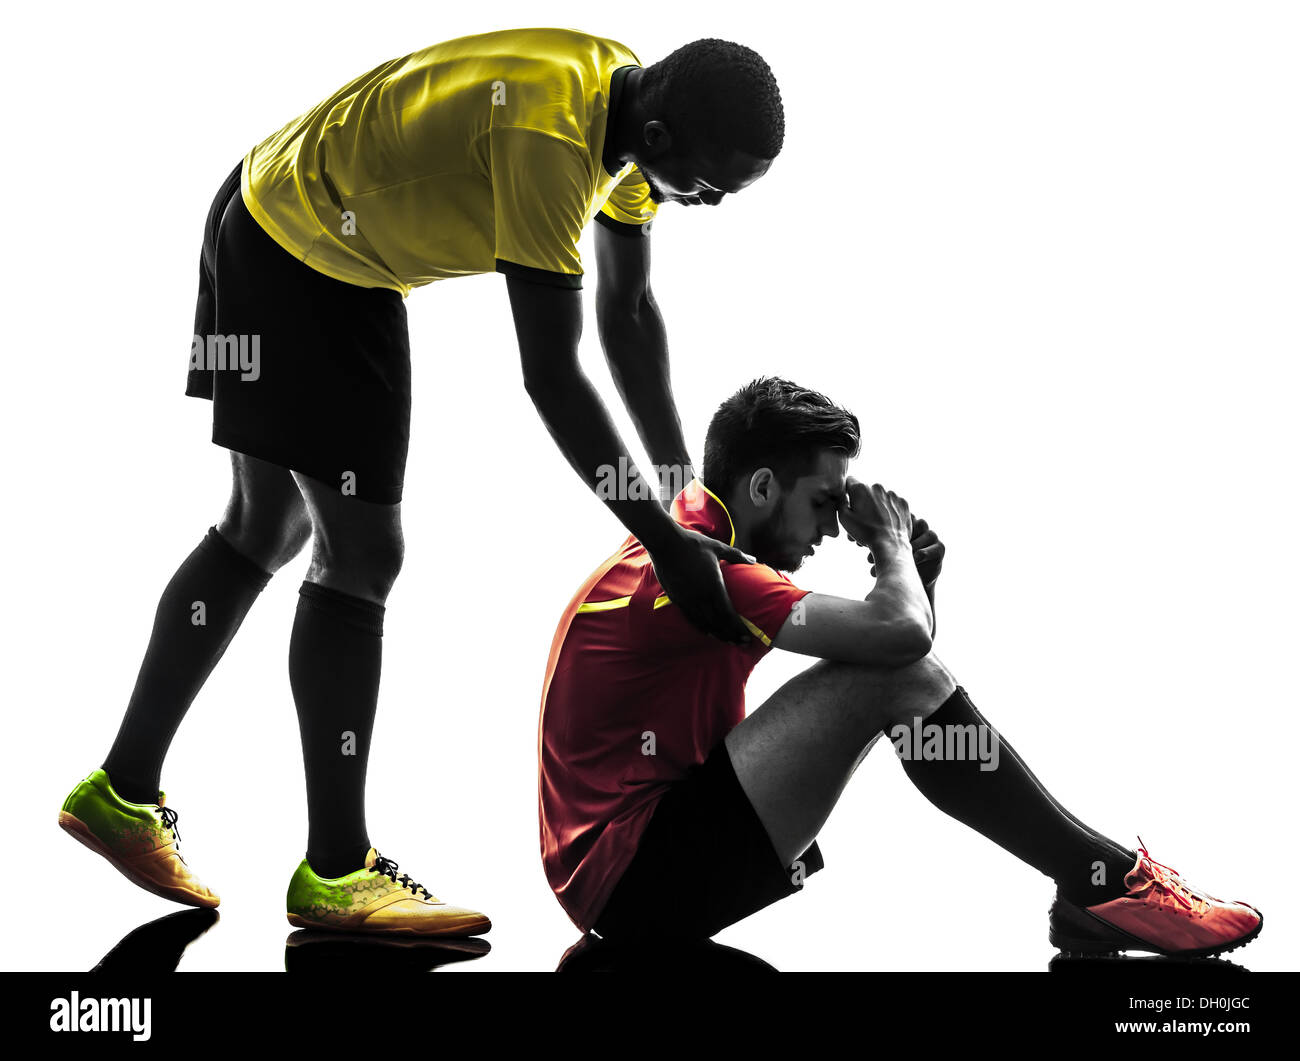 two men soccer player playing football competition fair play concept in silhouette on white background - Stock Image